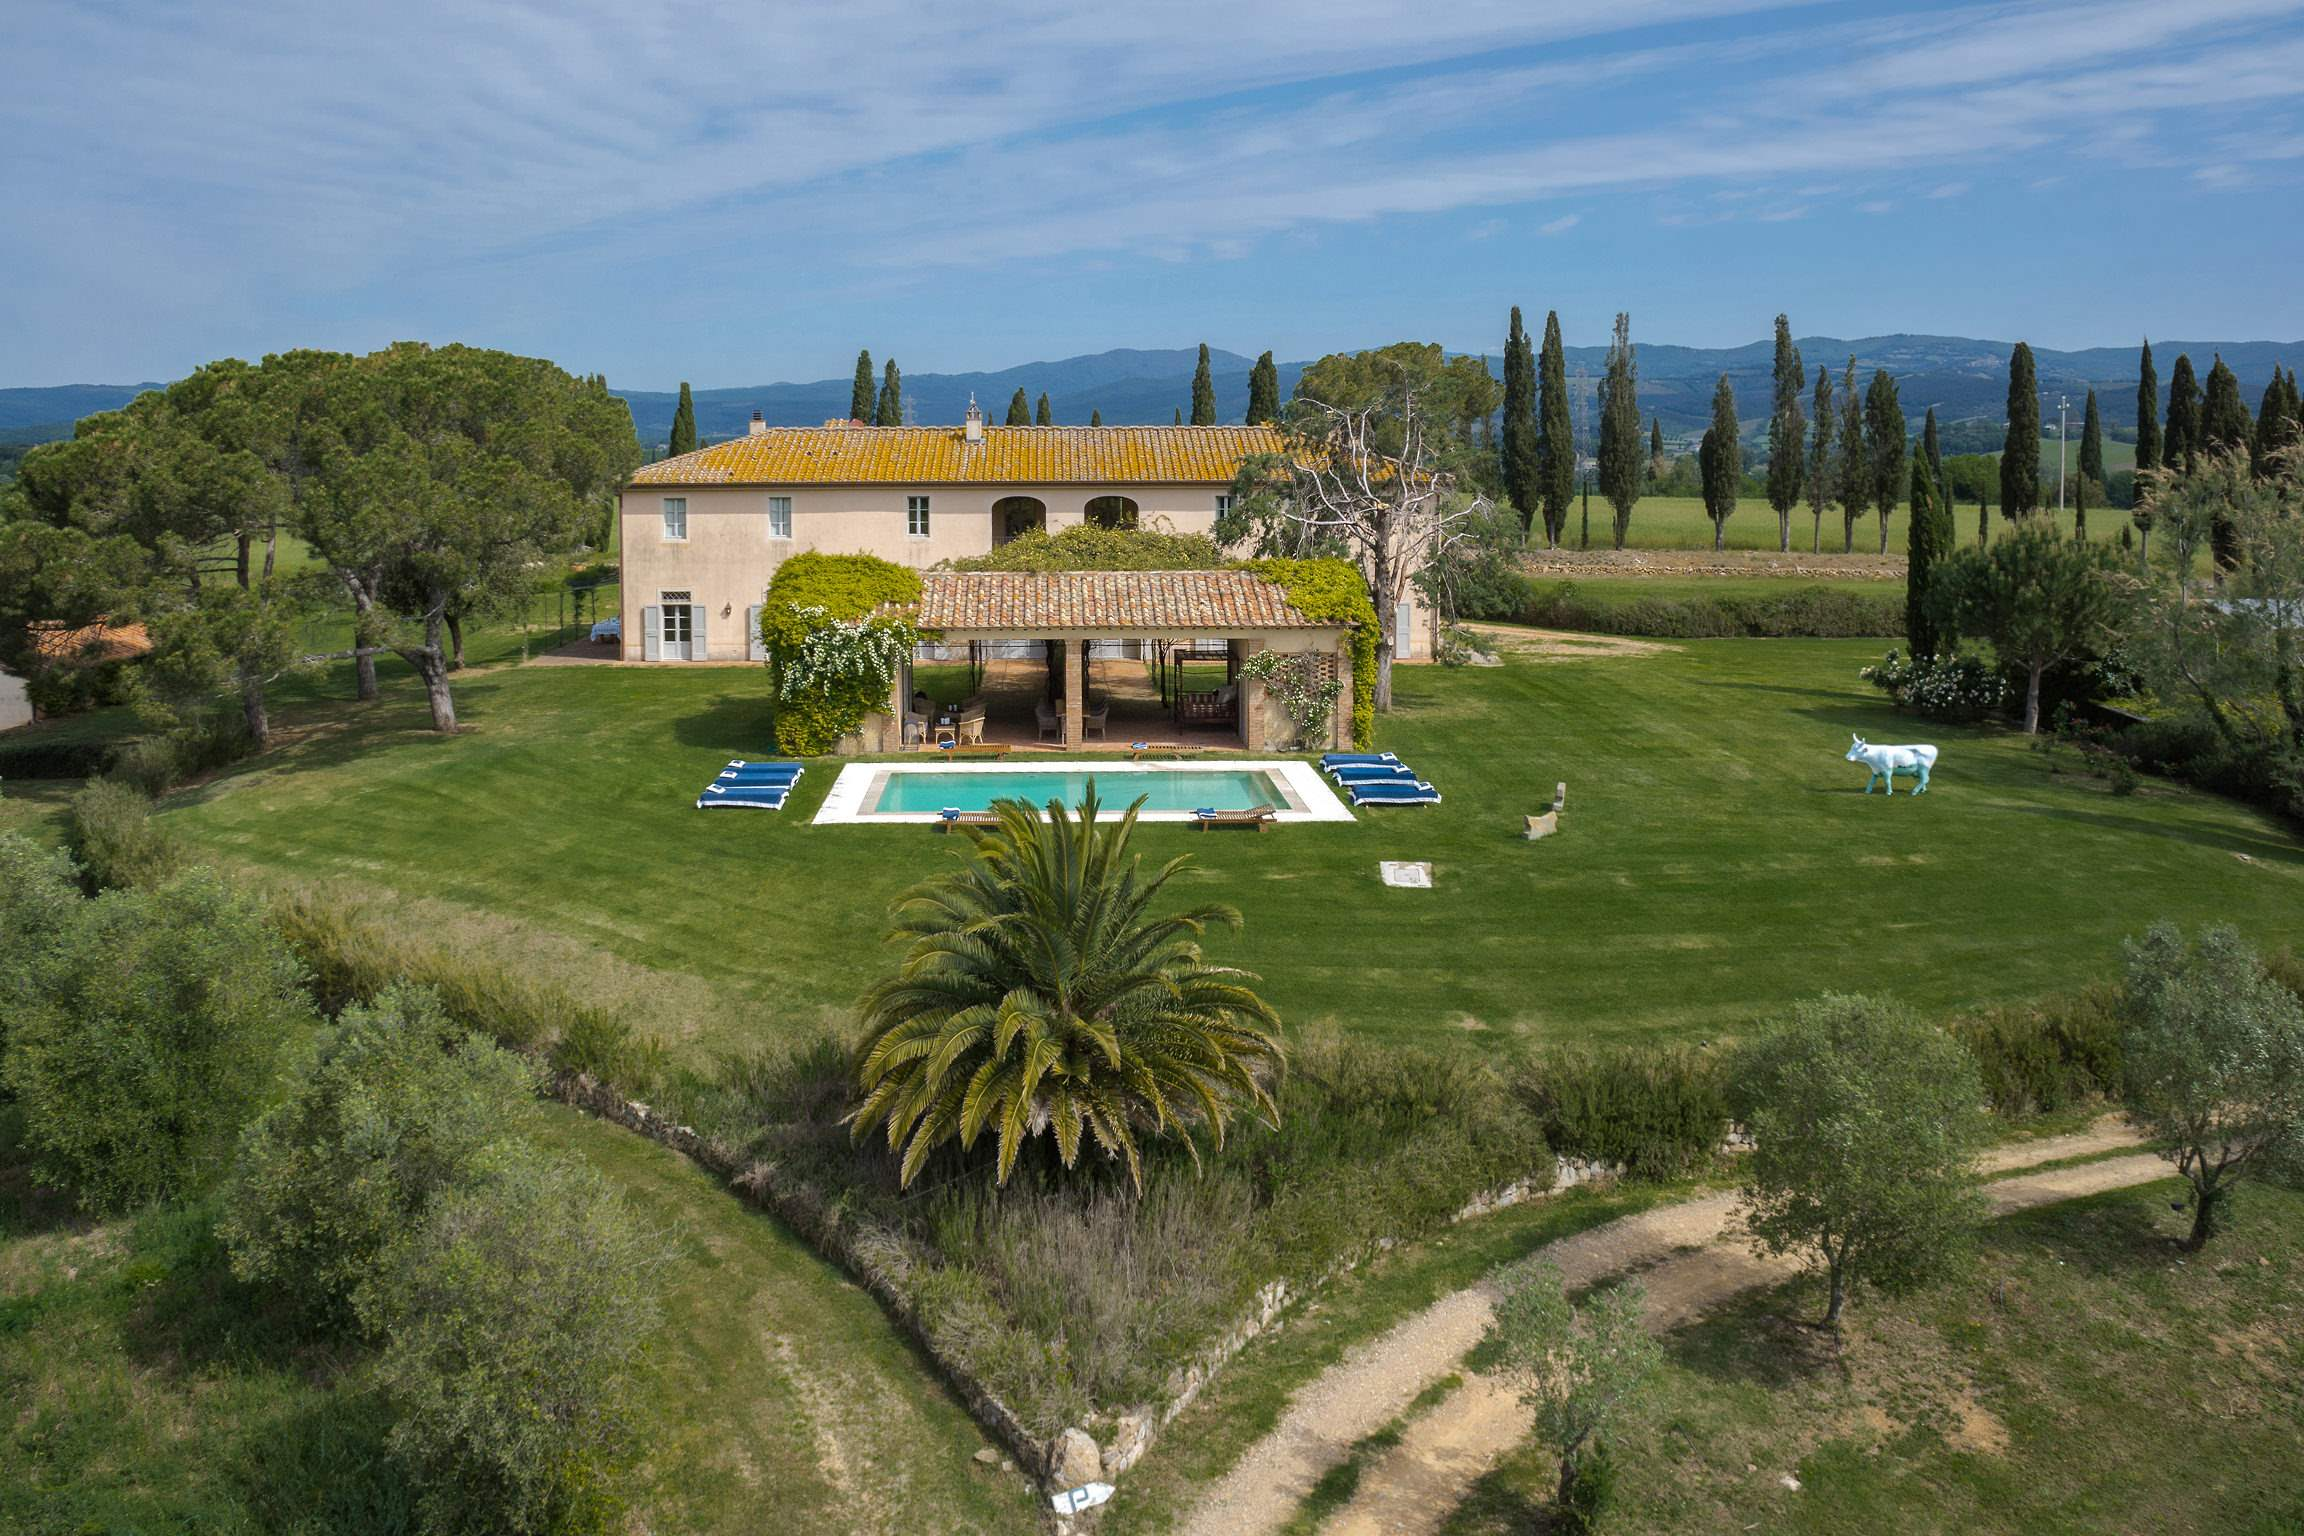 Villa Maremma 1, 7 bedroom villa in South Tuscany - Maremma, Tuscany Photo #1